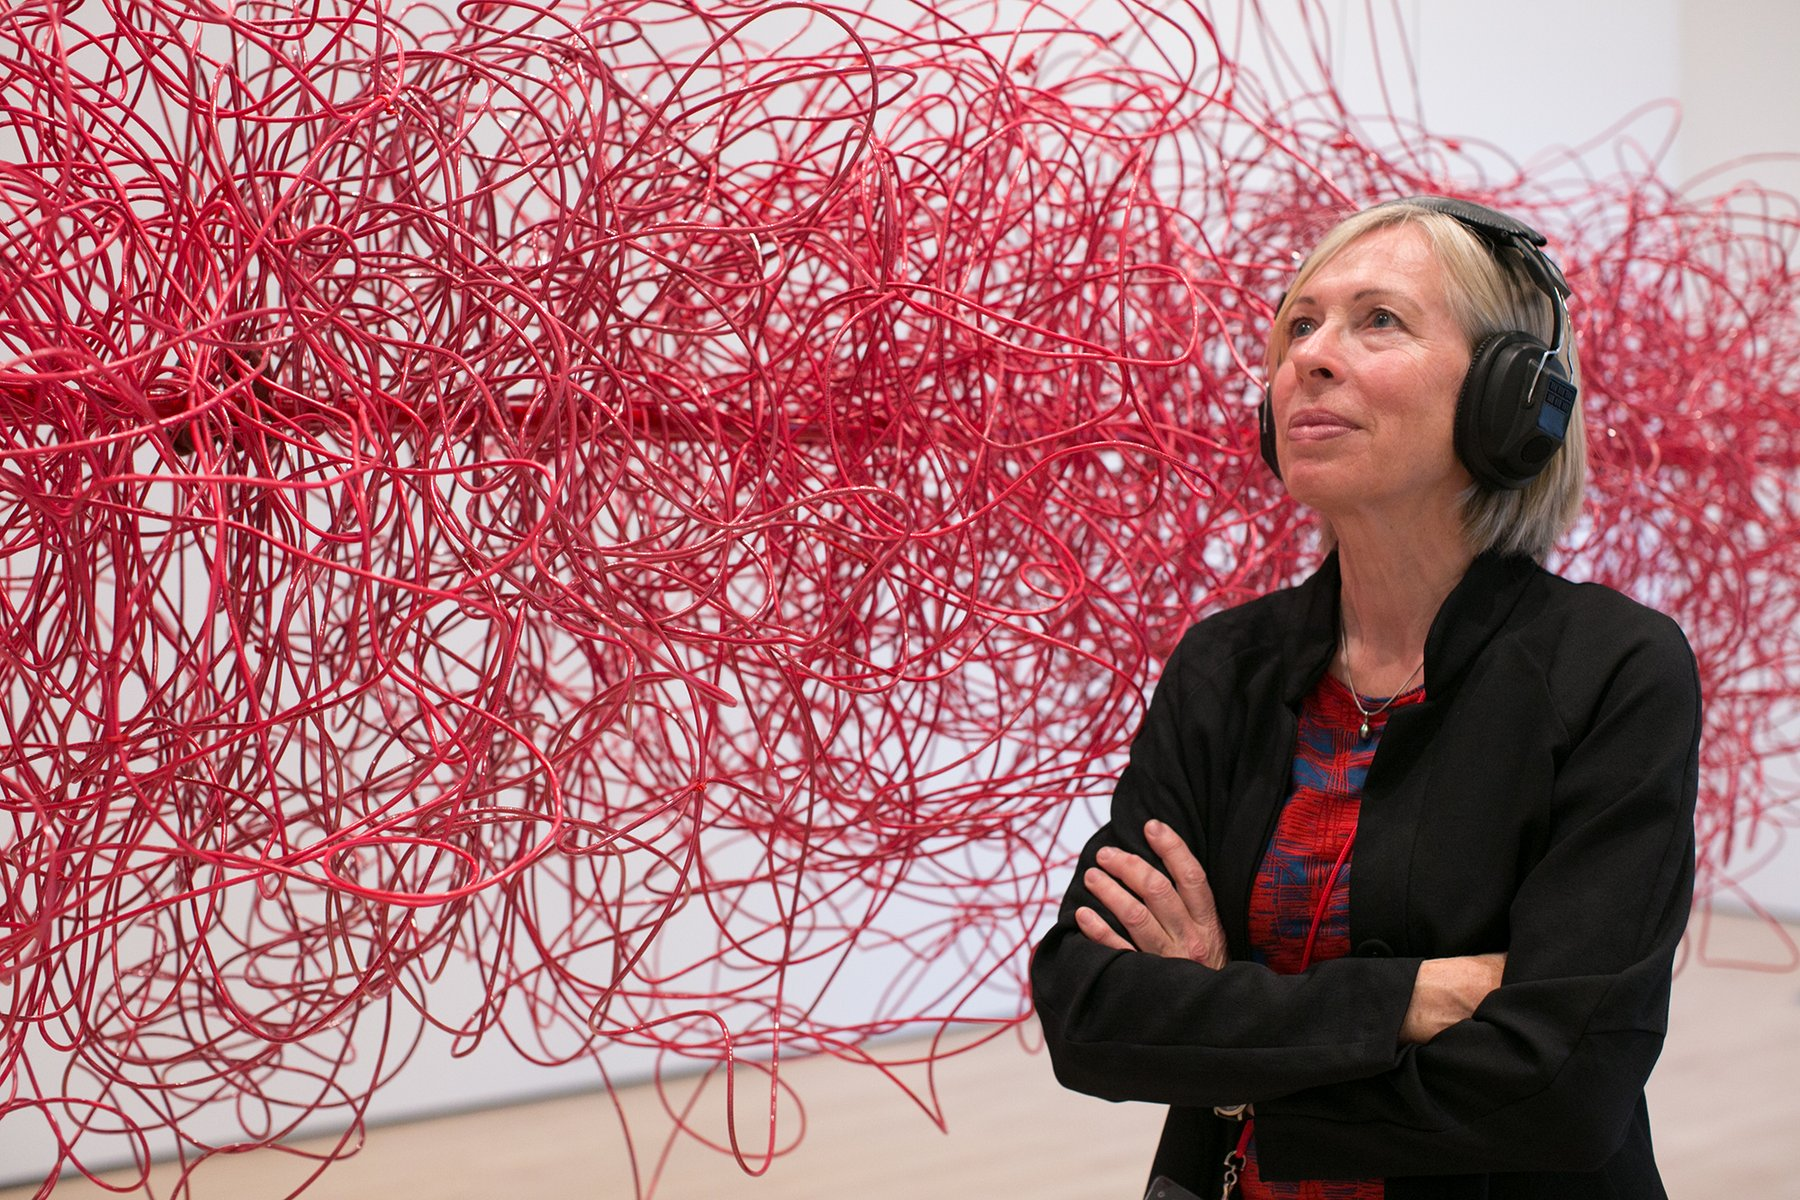 A blond Caucasian woman wears black headphones next to a cloud made of red electrical wires, Kubisch, Soundtracks